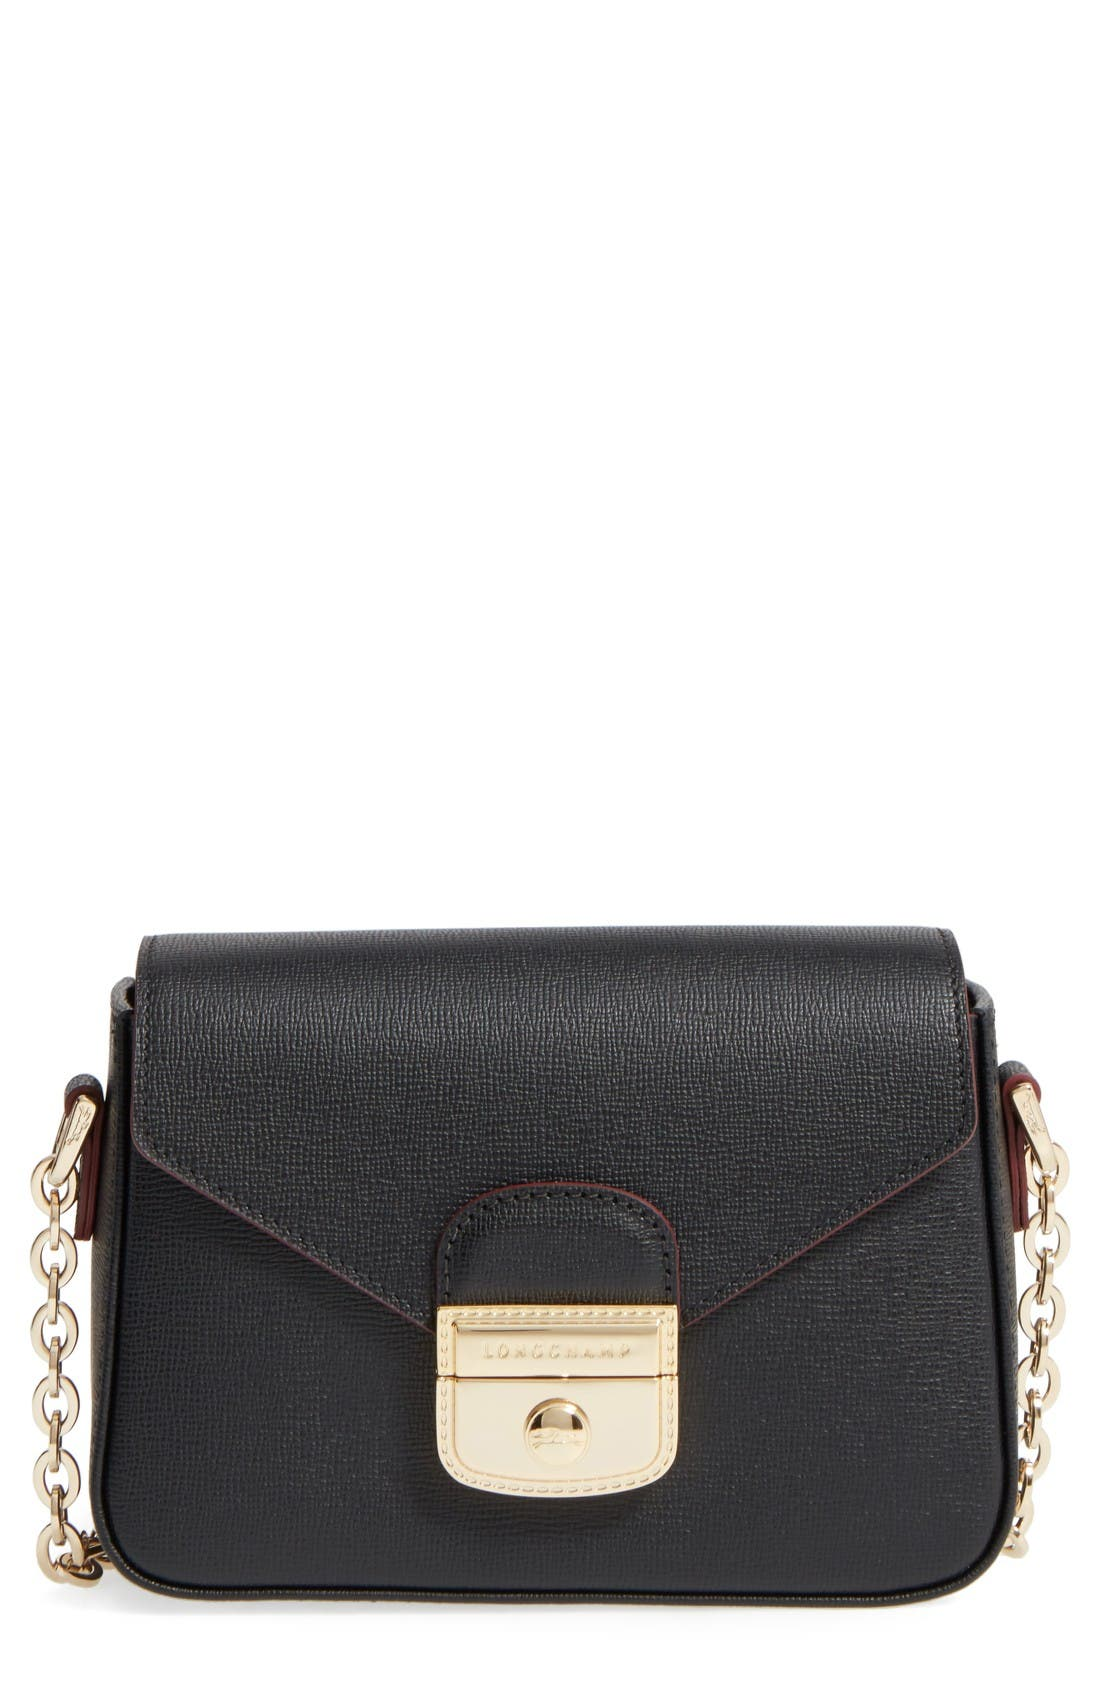 Longchamp Small Le Pliage Heritage Leather Crossbody Bag